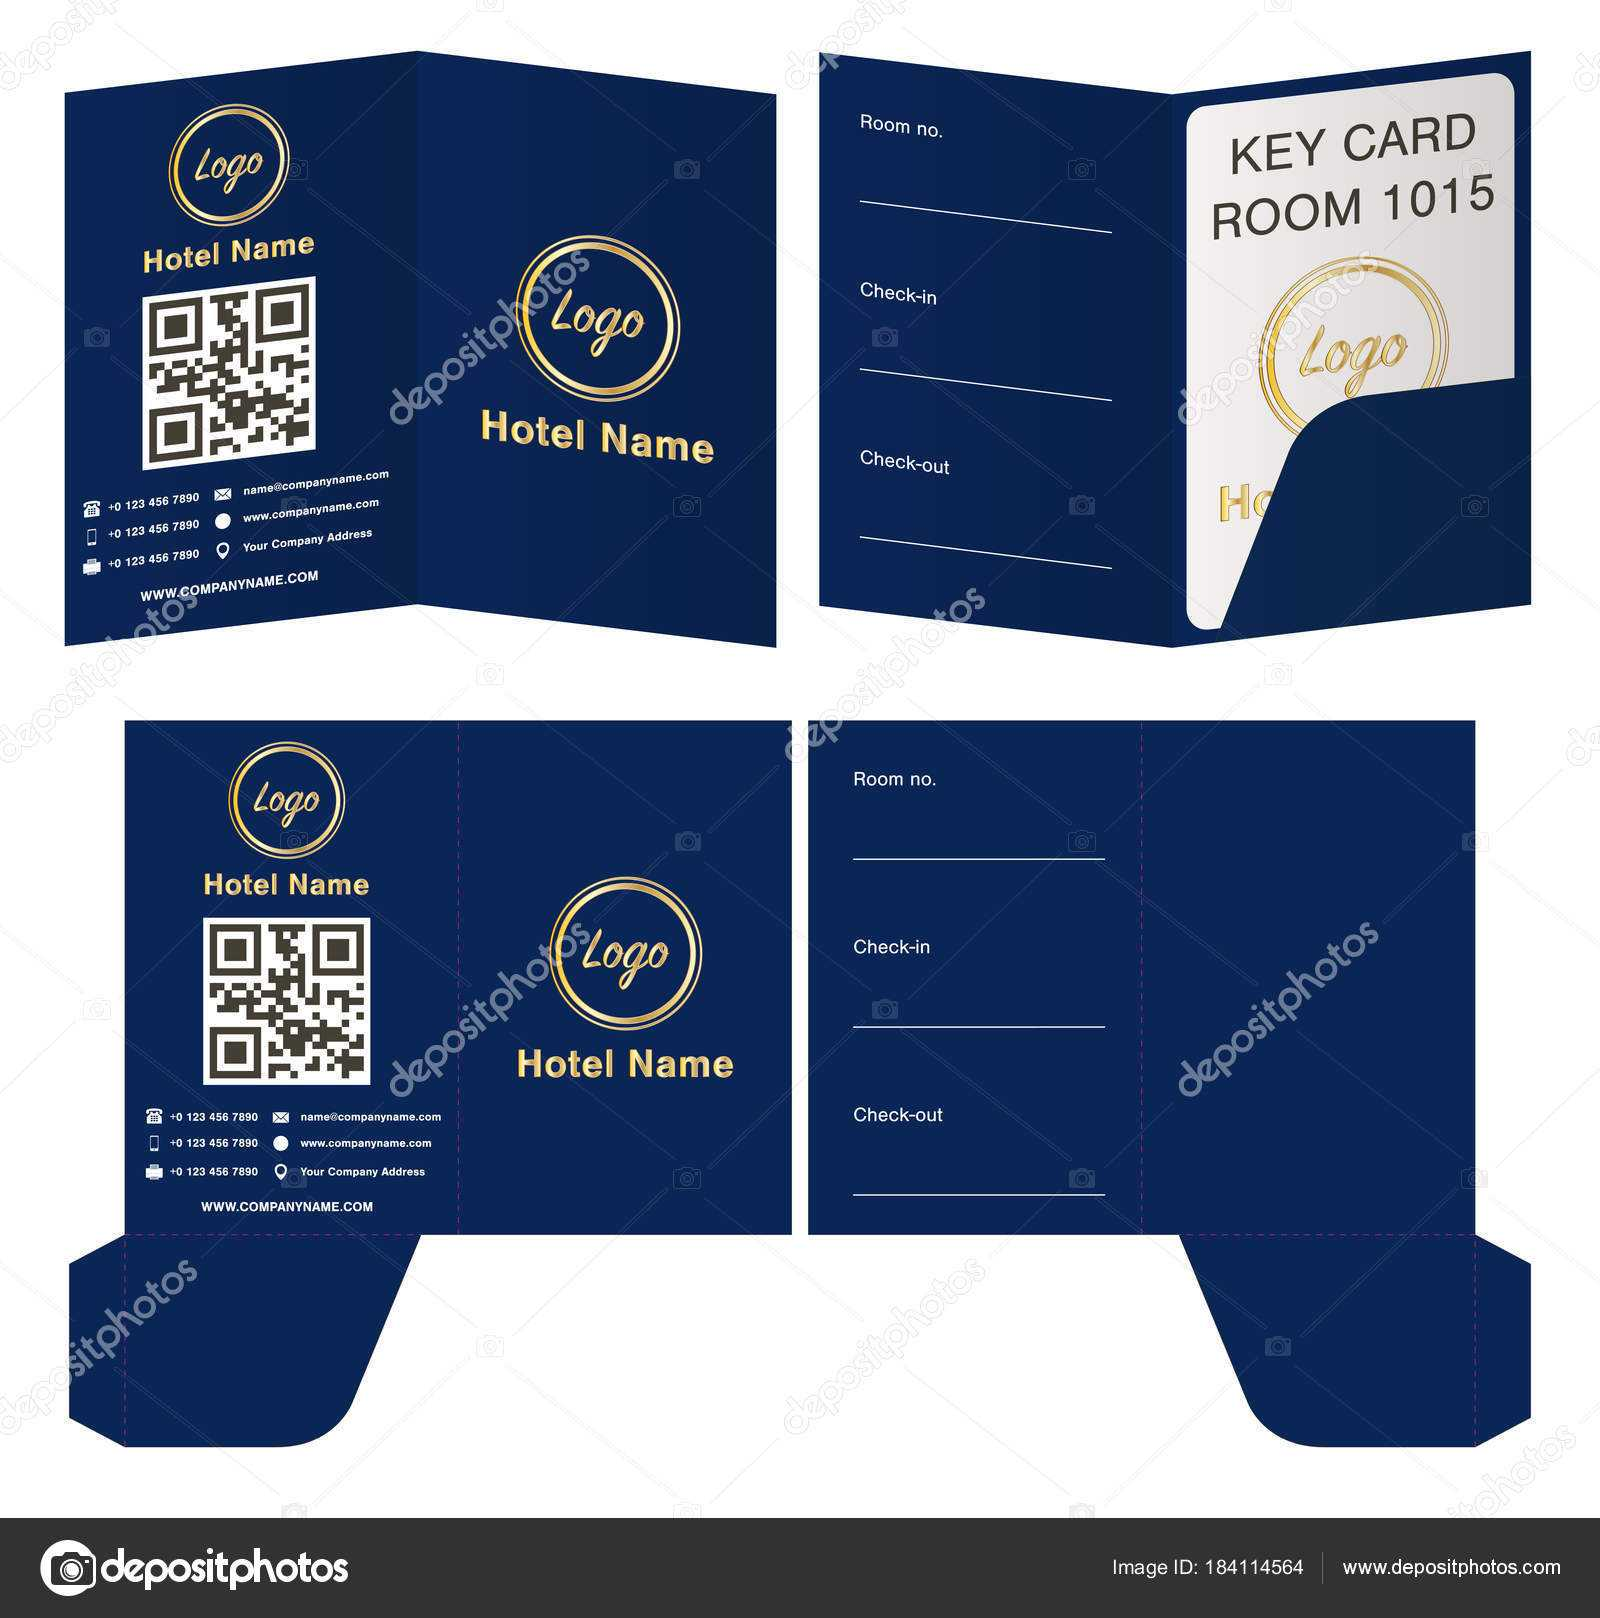 Key Card Holder Template | Hotel Key Card Holder Folder Regarding Hotel Key Card Template